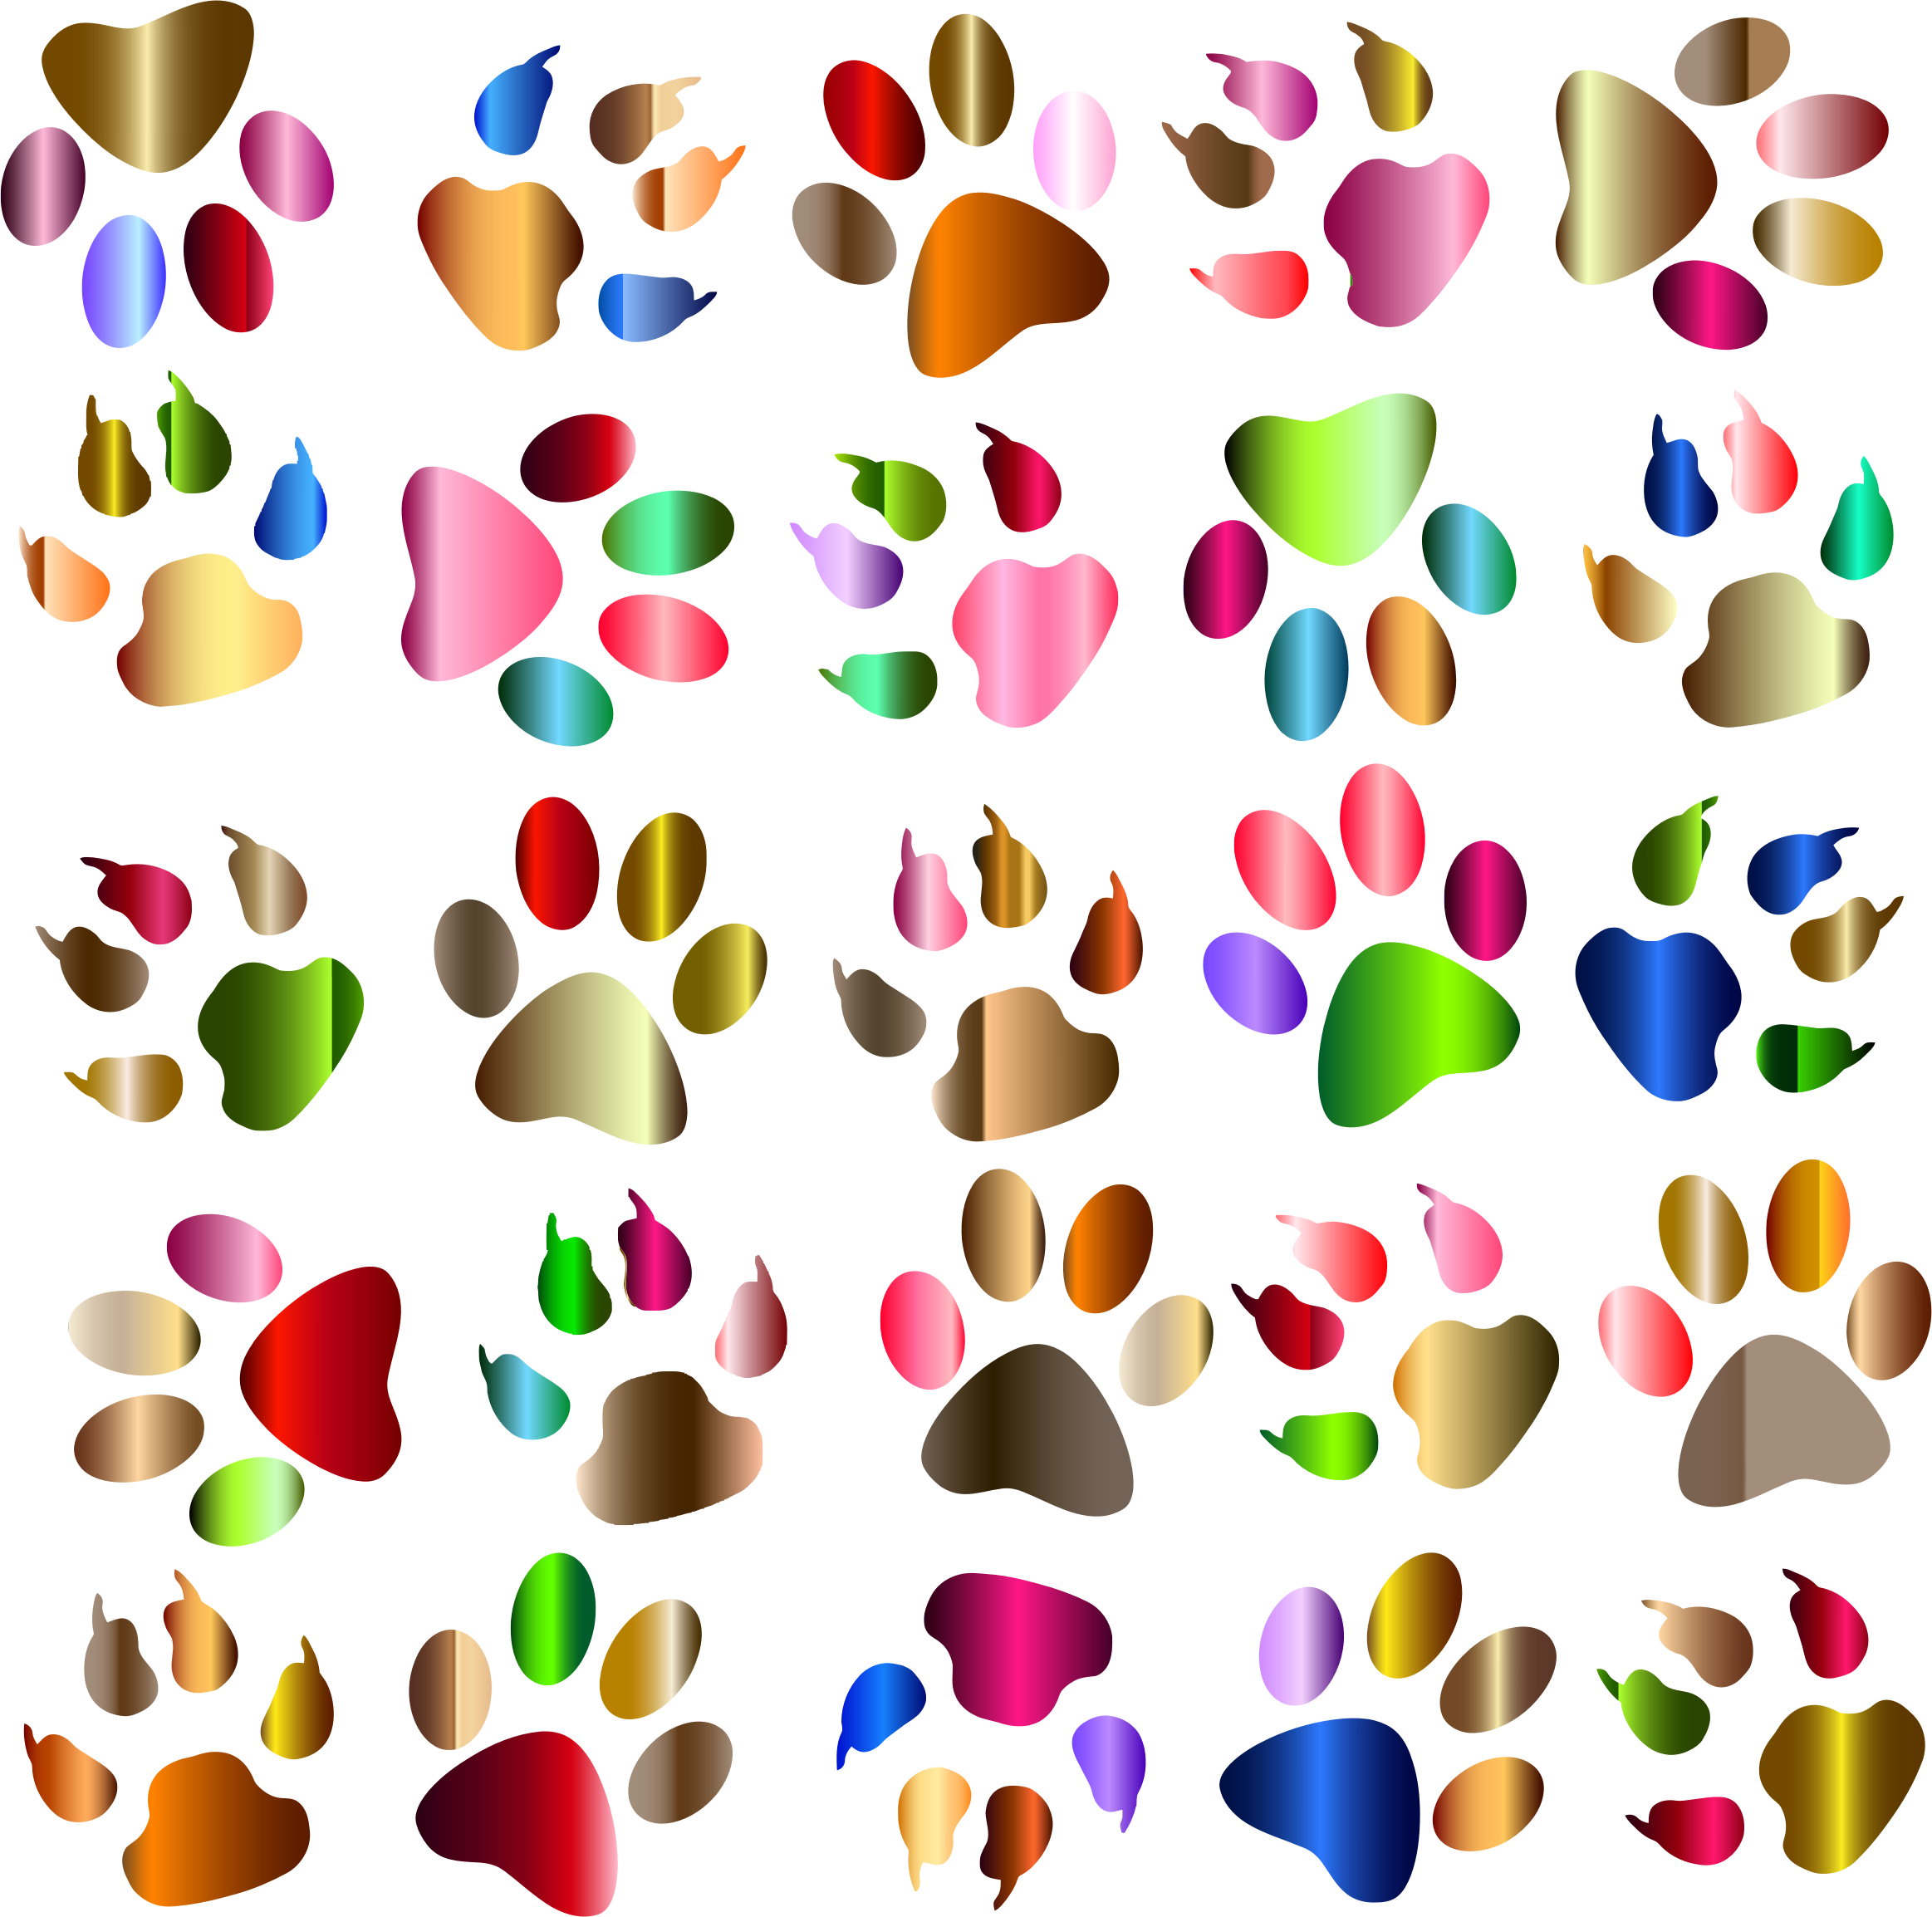 Paw clipart rainbow. Colorful prints pattern background